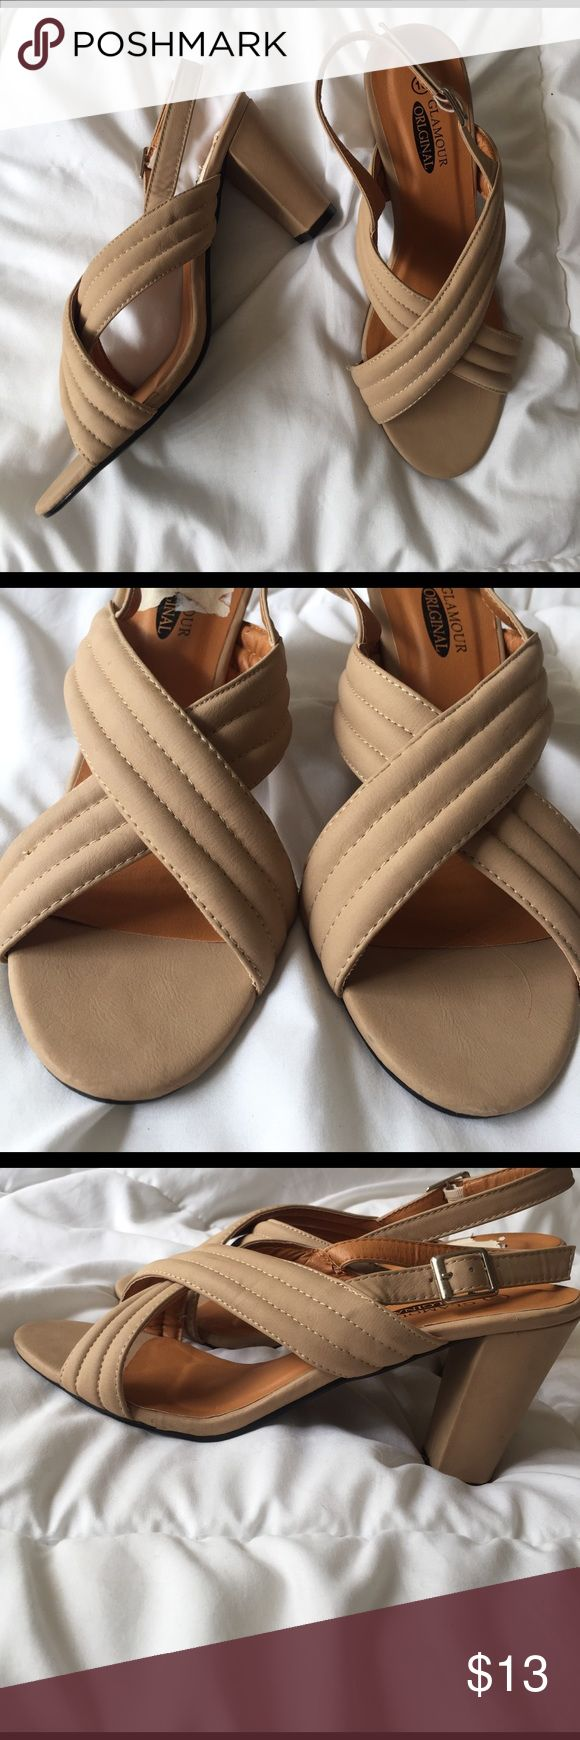 SEND ANY OFFER! Nude Strappy High Heels Sandals Brand new. Has never been worn. NEW WITHOUT THE BOX! Send me ANY offer!! Shoes Heels